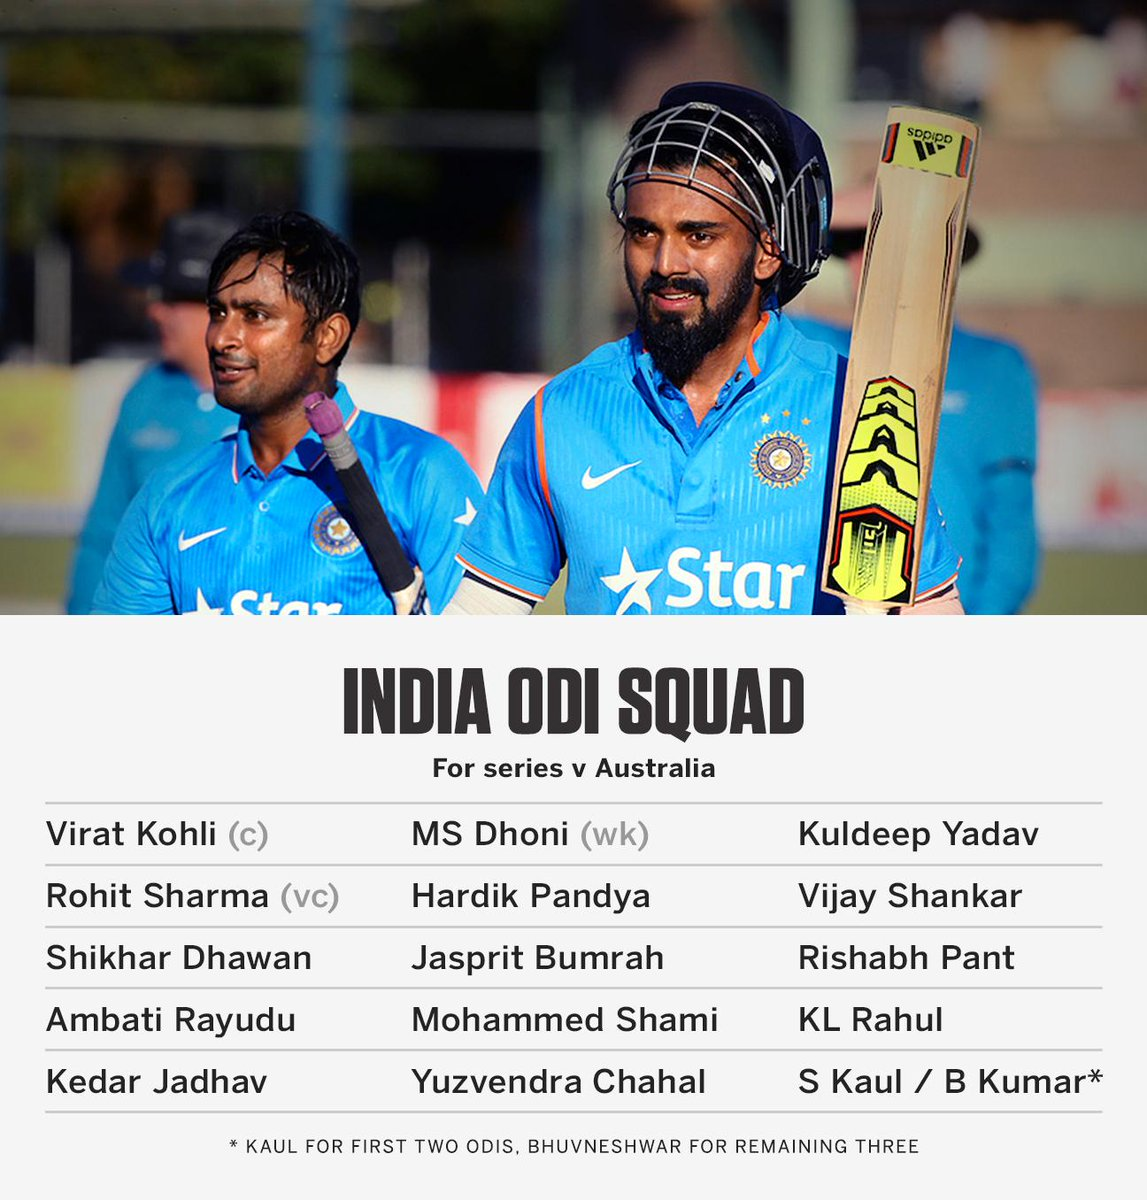 Happy with India's squad for the Australia ODIs?   https://t.co/EazNO4KBIU #INDvAUS